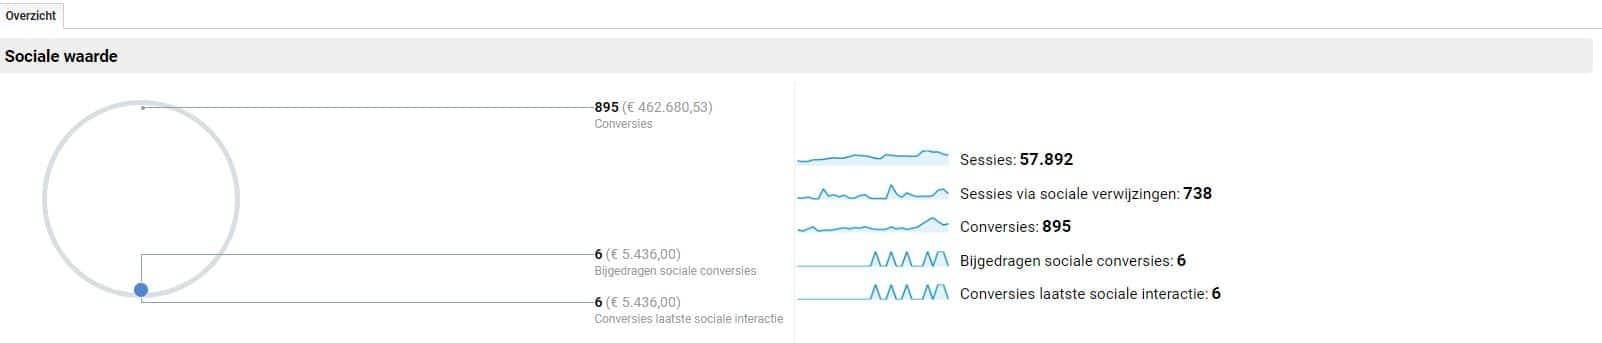 Google analytics social media rapportage